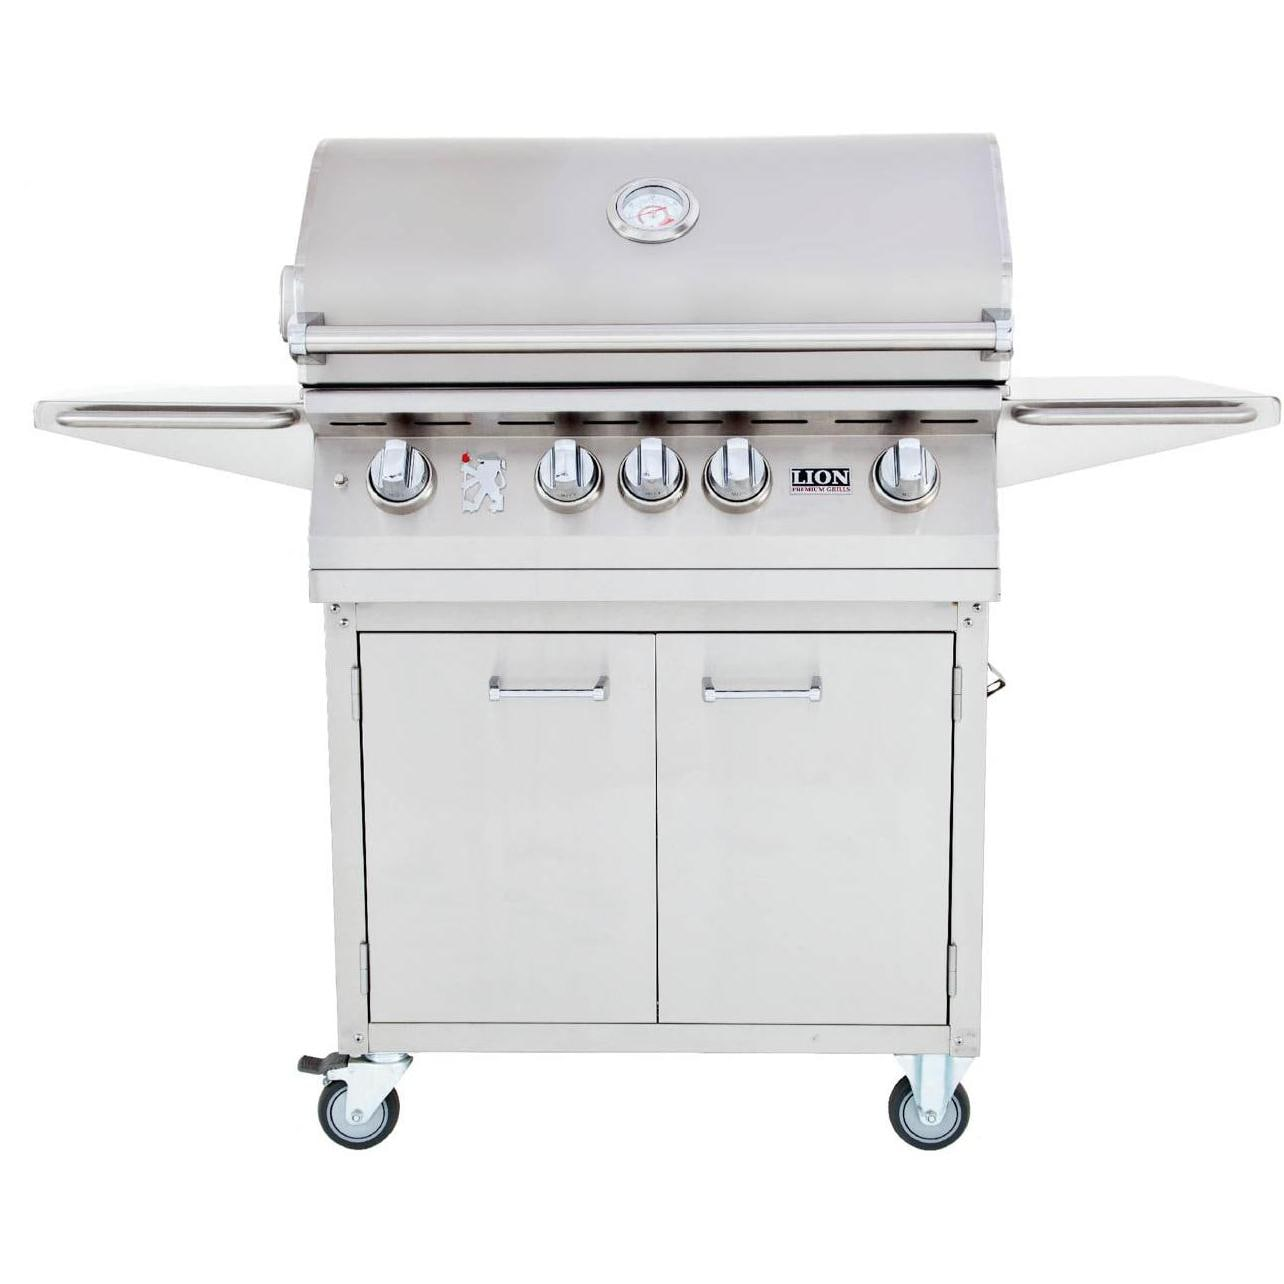 lion 32inch l75000 stainless steel propane gas grill on cart